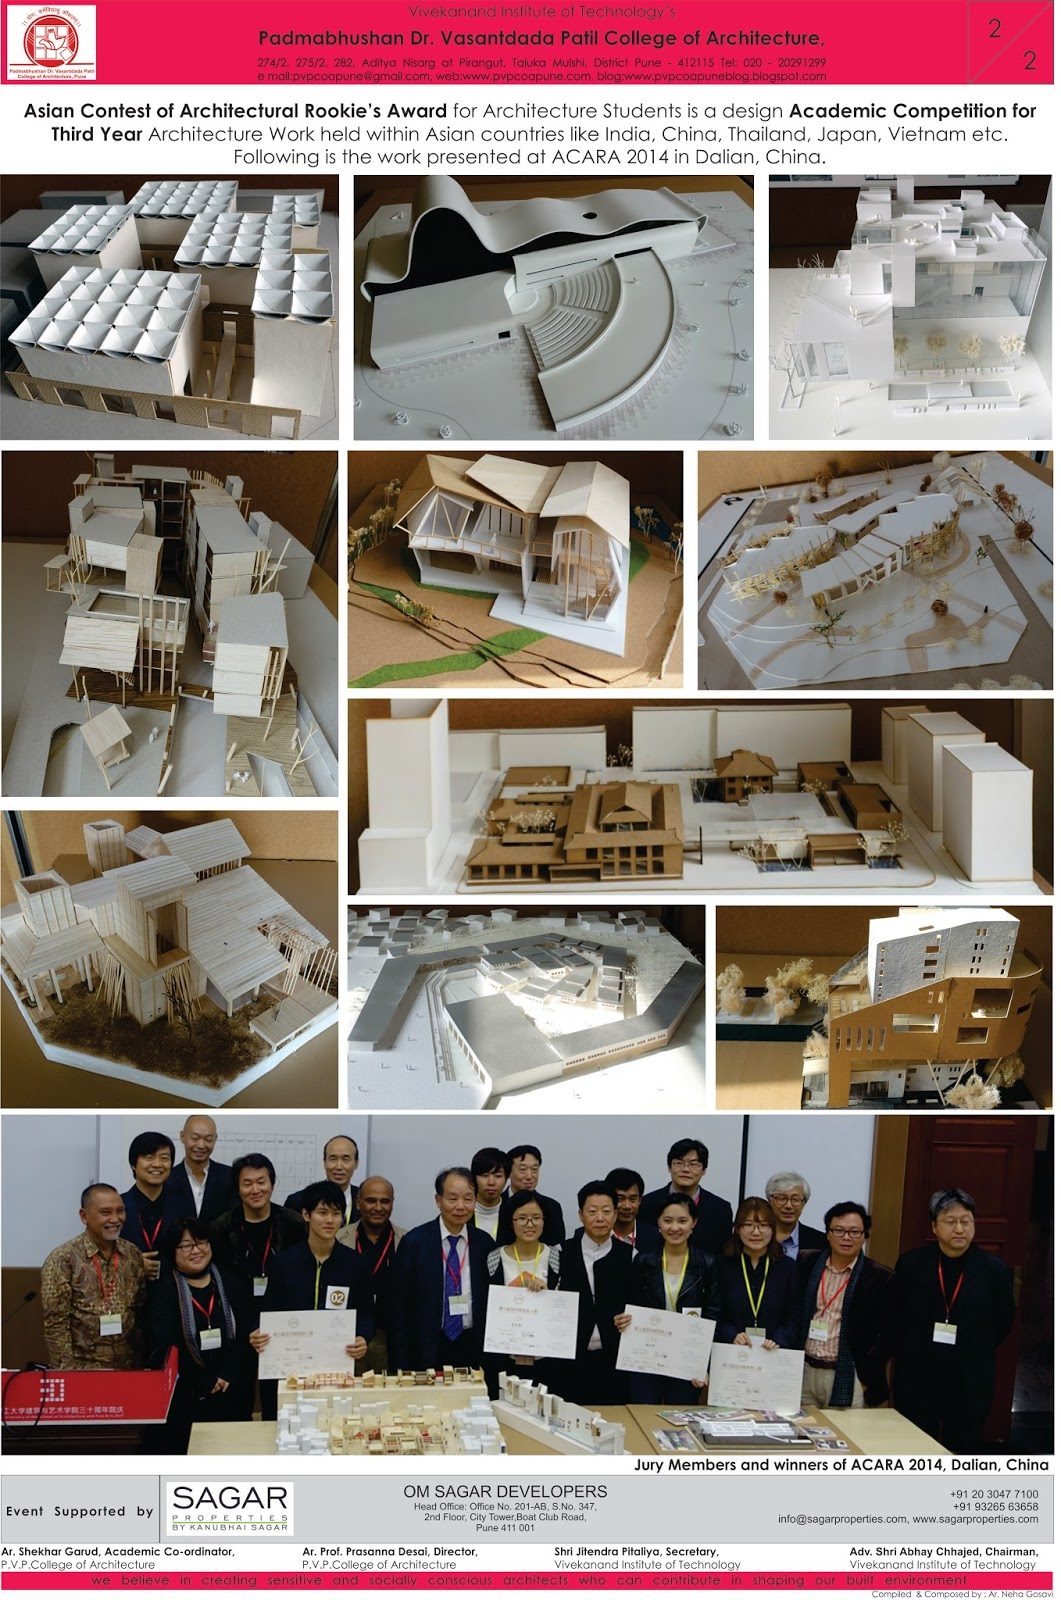 pvp college of architecture registration for asian contest for